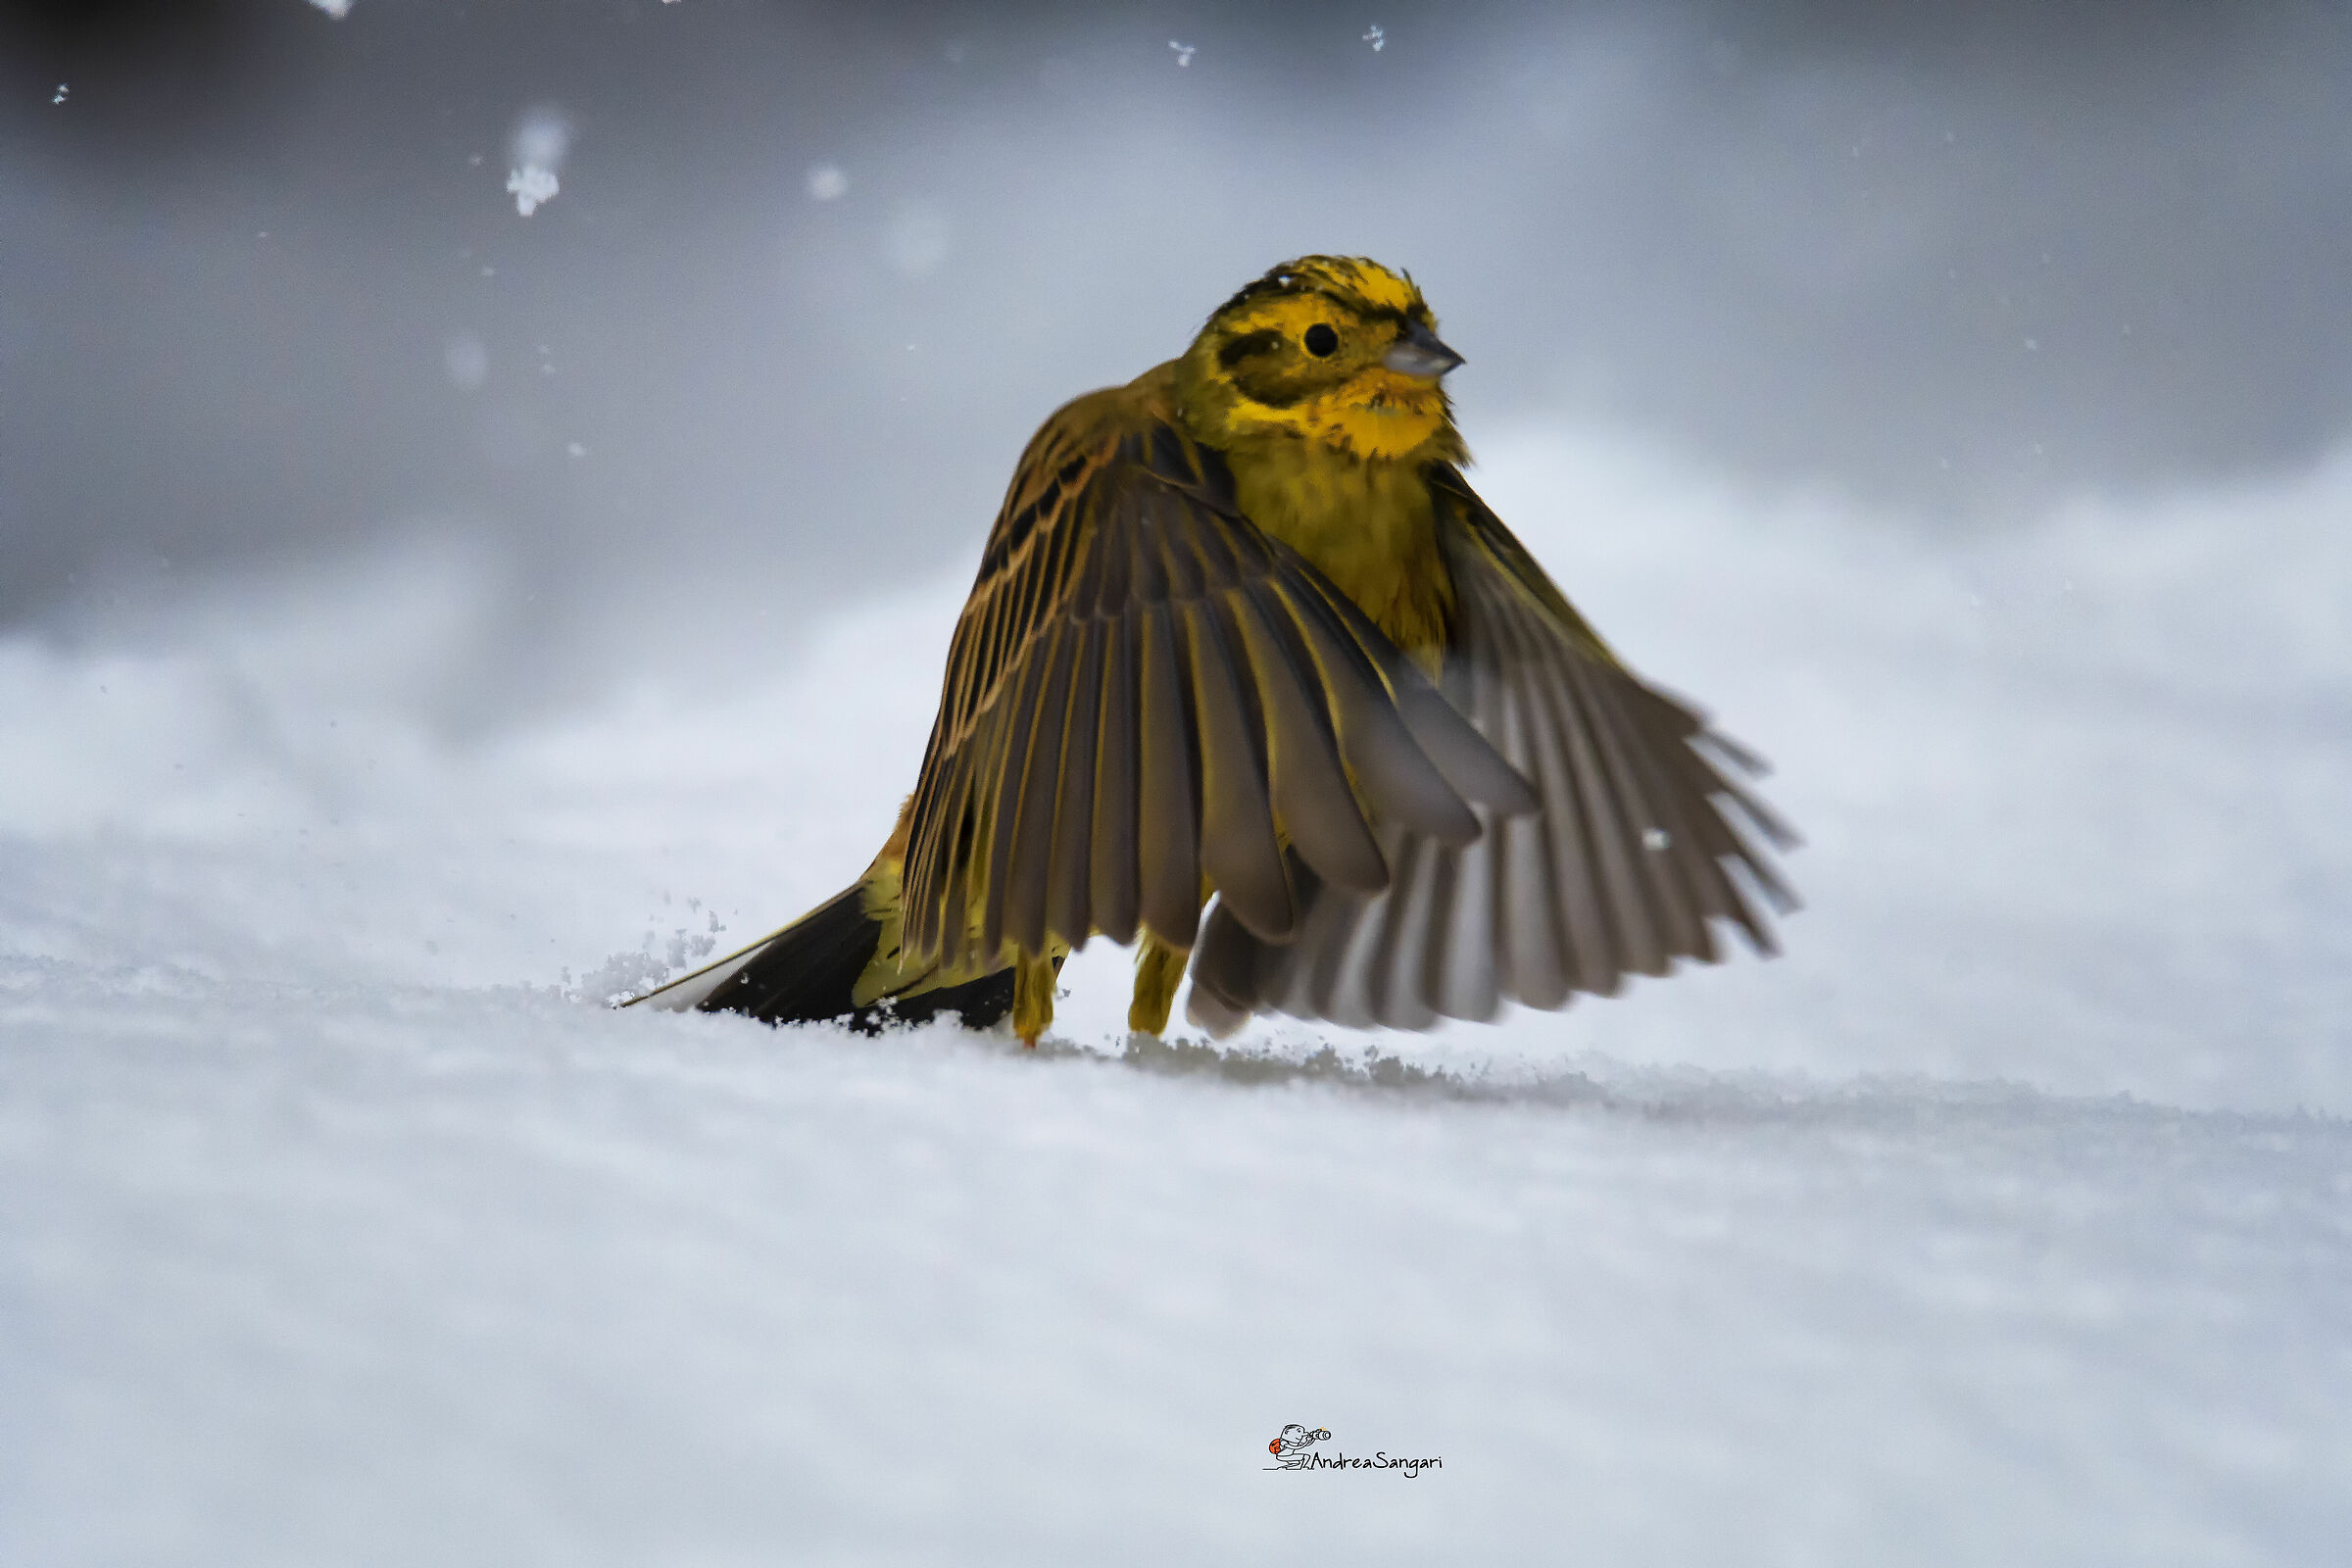 The Yellowhammer in the blizzard...